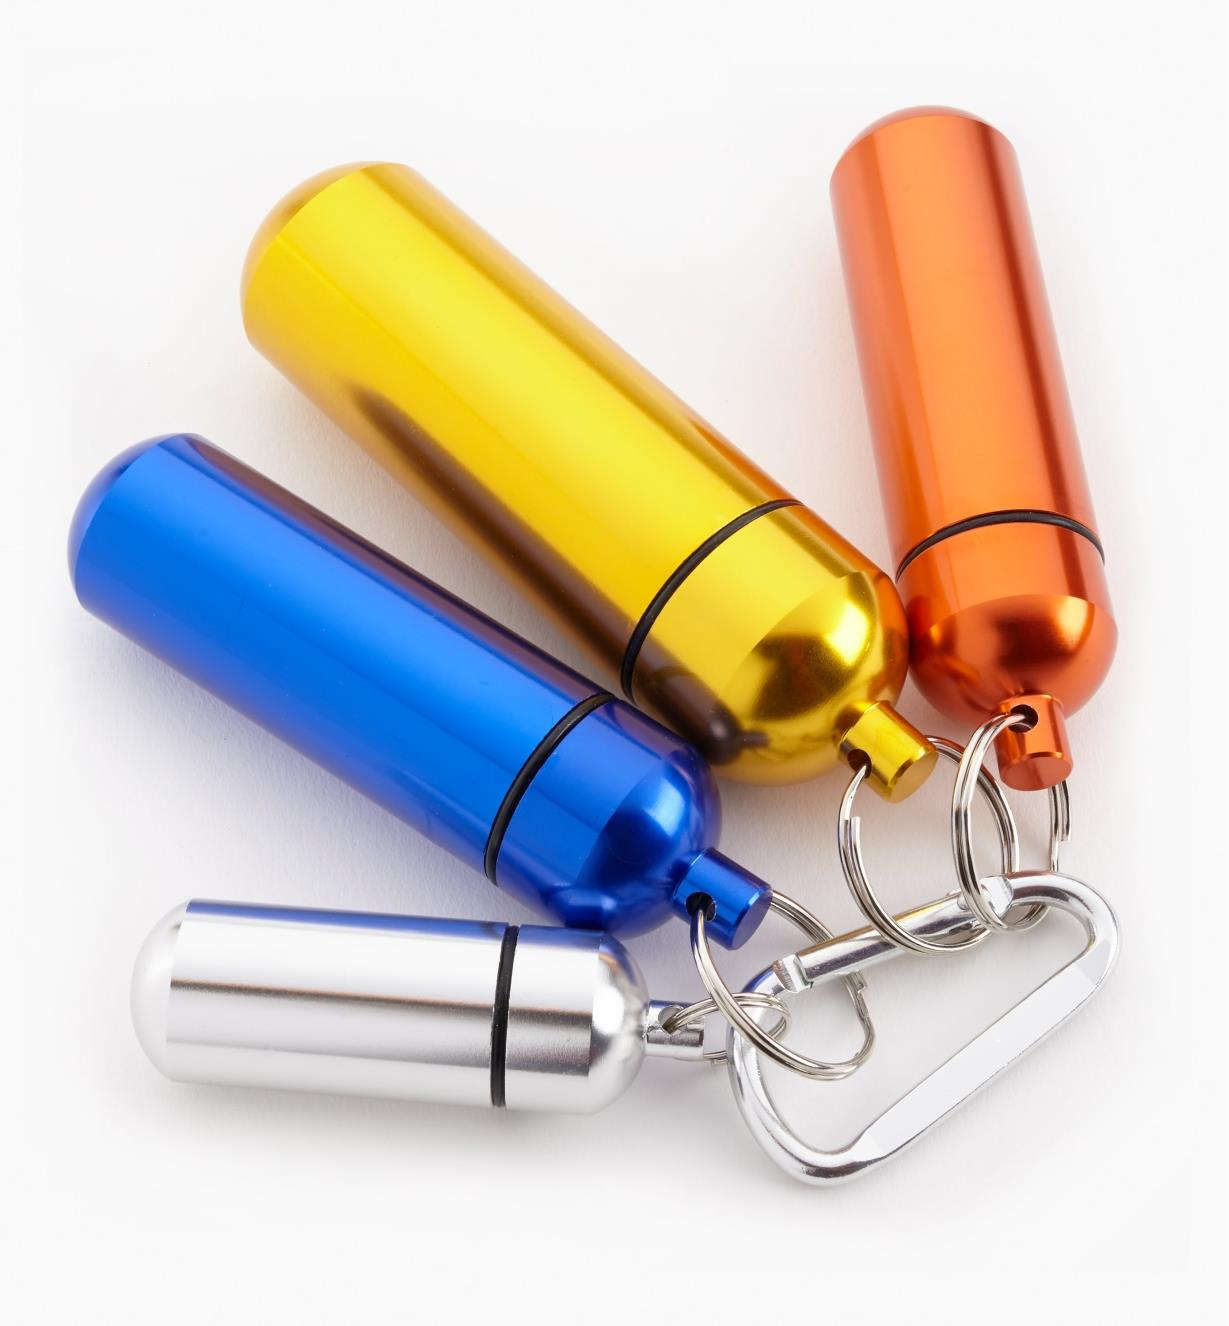 09A0770 - Utility Capsule Set of 4 (Silver, Orange, Blue and Gold)